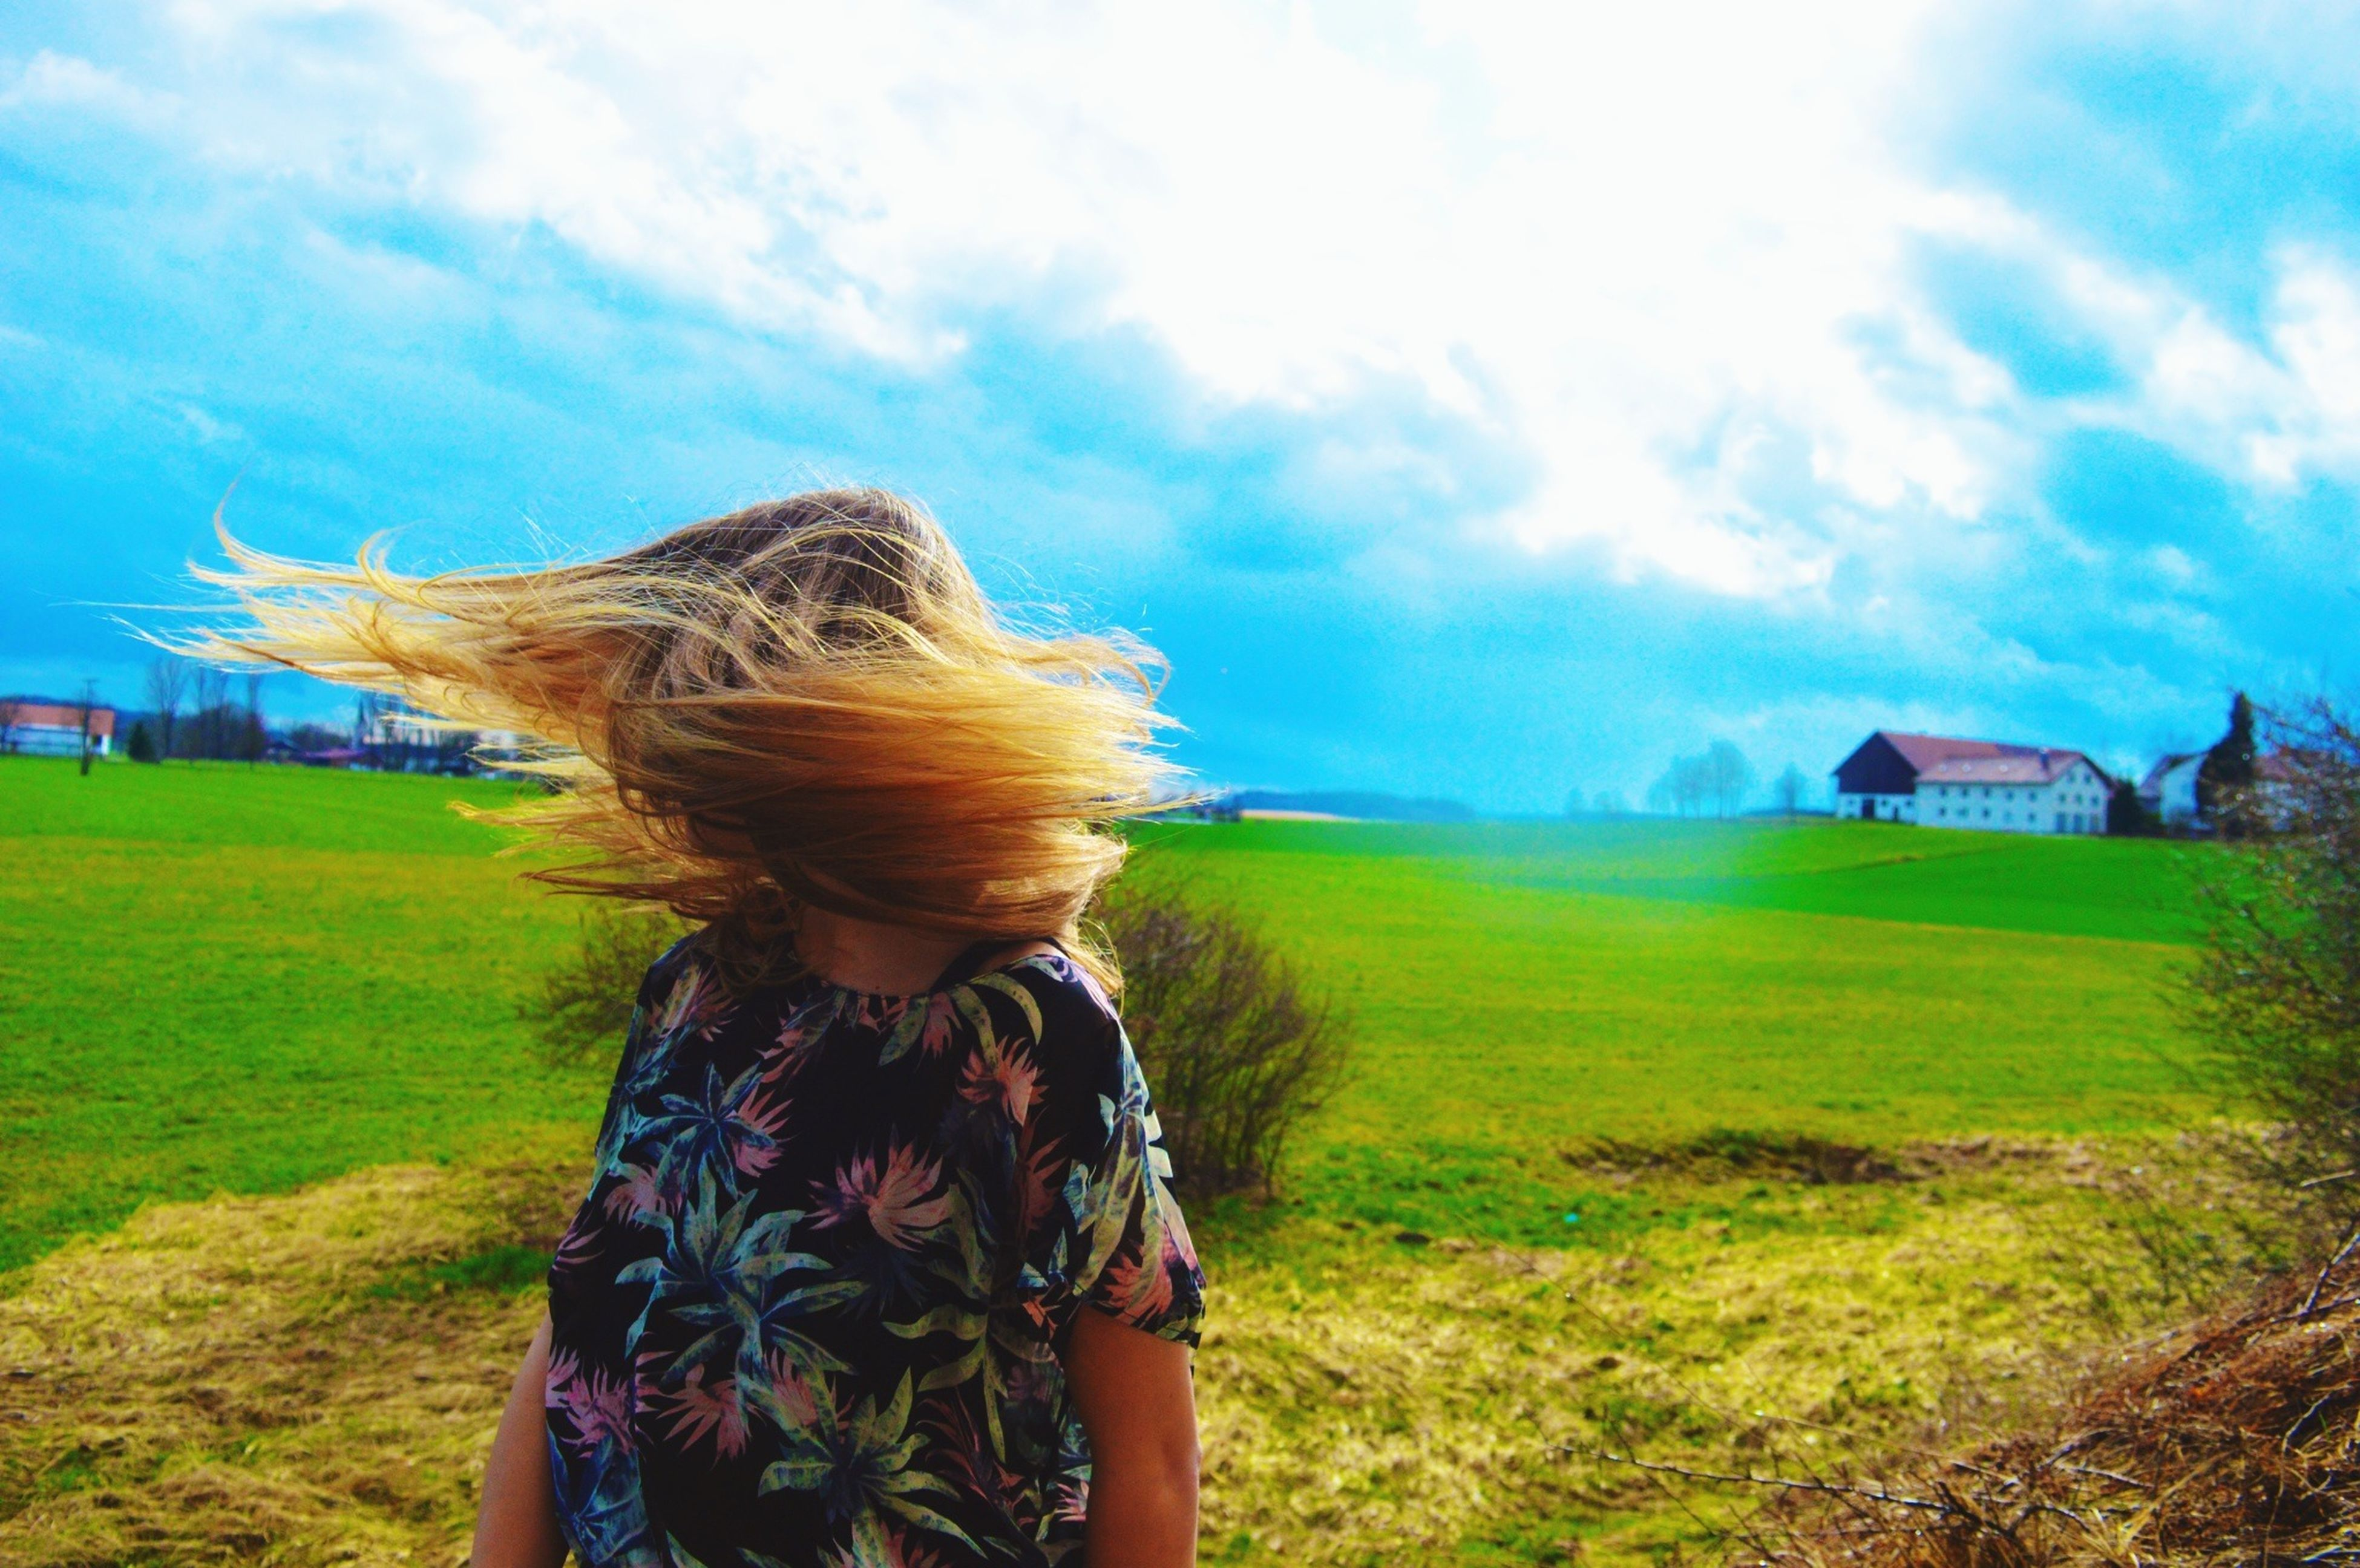 grass, field, sky, grassy, long hair, landscape, leisure activity, lifestyles, cloud - sky, standing, cloud, rear view, person, blond hair, young women, nature, blue, casual clothing